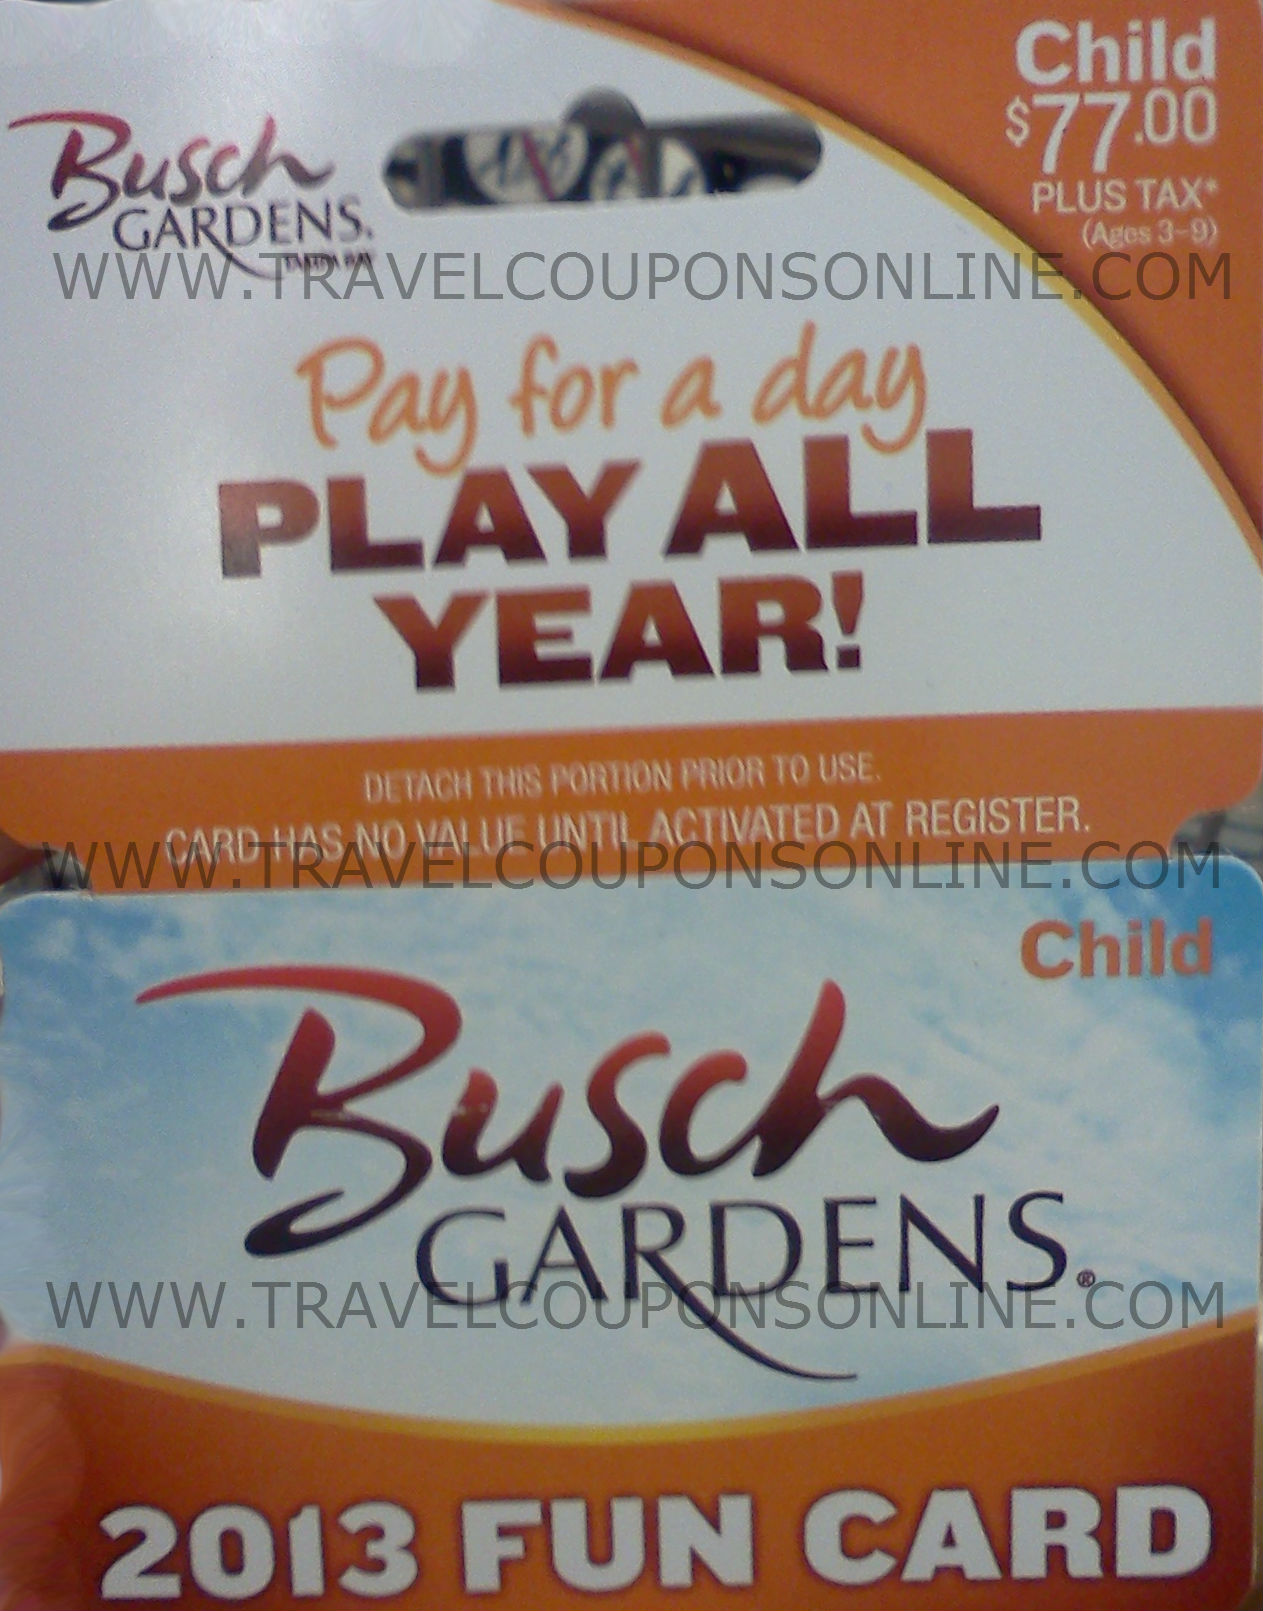 Nov 07,  · Busch Gardens Tampa Bay Fun Card Now $ Verified Used 25 Times in the Last Week. Get Offer. Expired and Not Verified Busch Gardens Promo Codes & Offers. Add a Busch Gardens Coupon. Found a great deal or code? Share the .